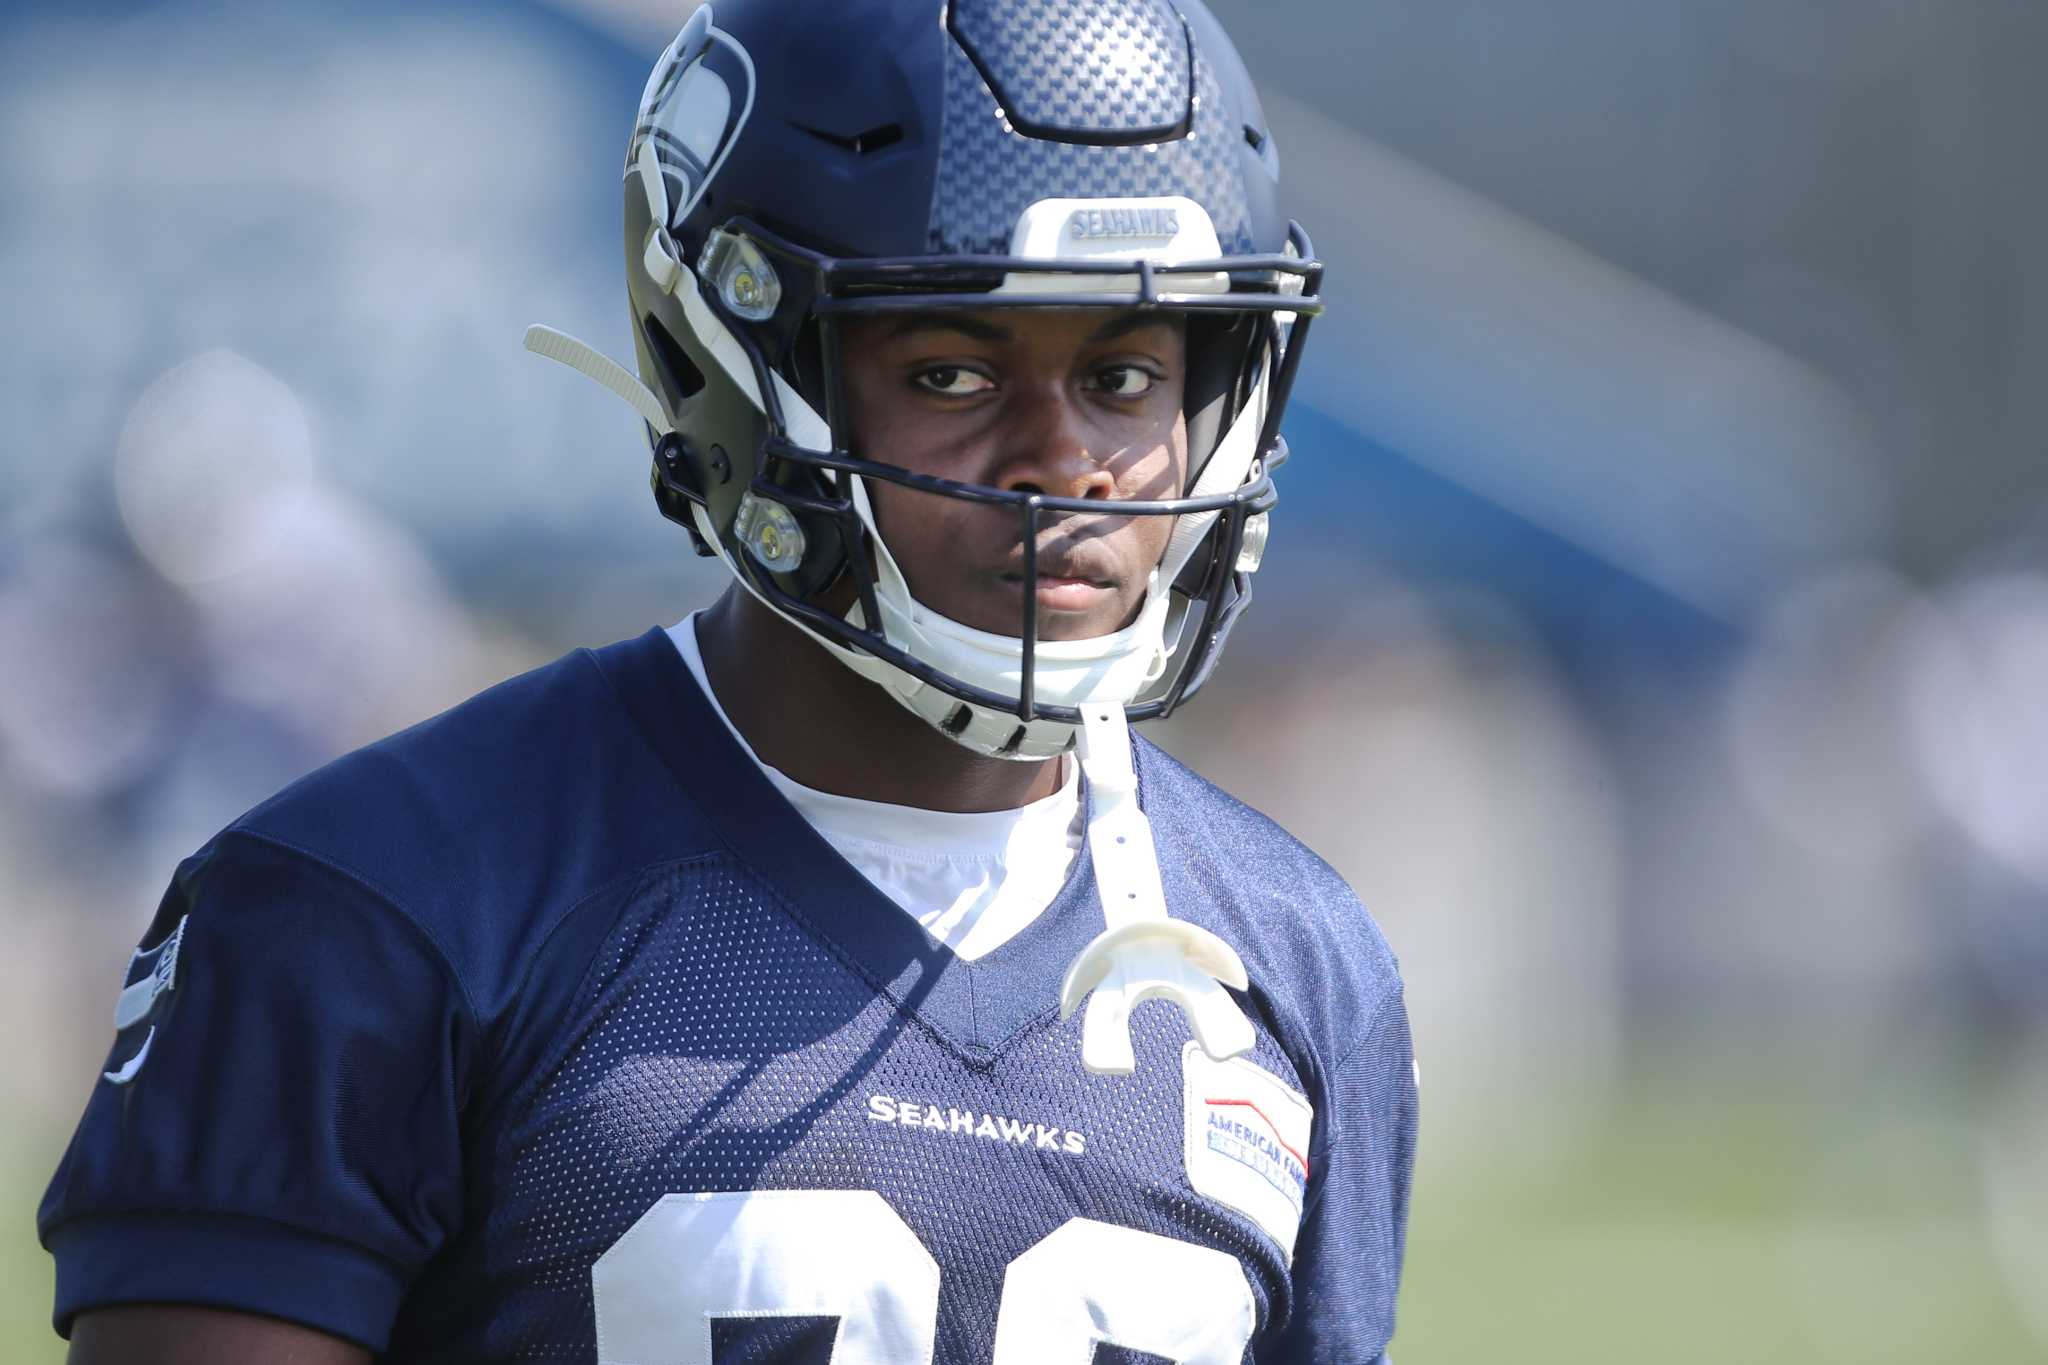 online retailer 4f165 8af23 Nigerian roots at core of motivation for Seahawks rookie DB ...